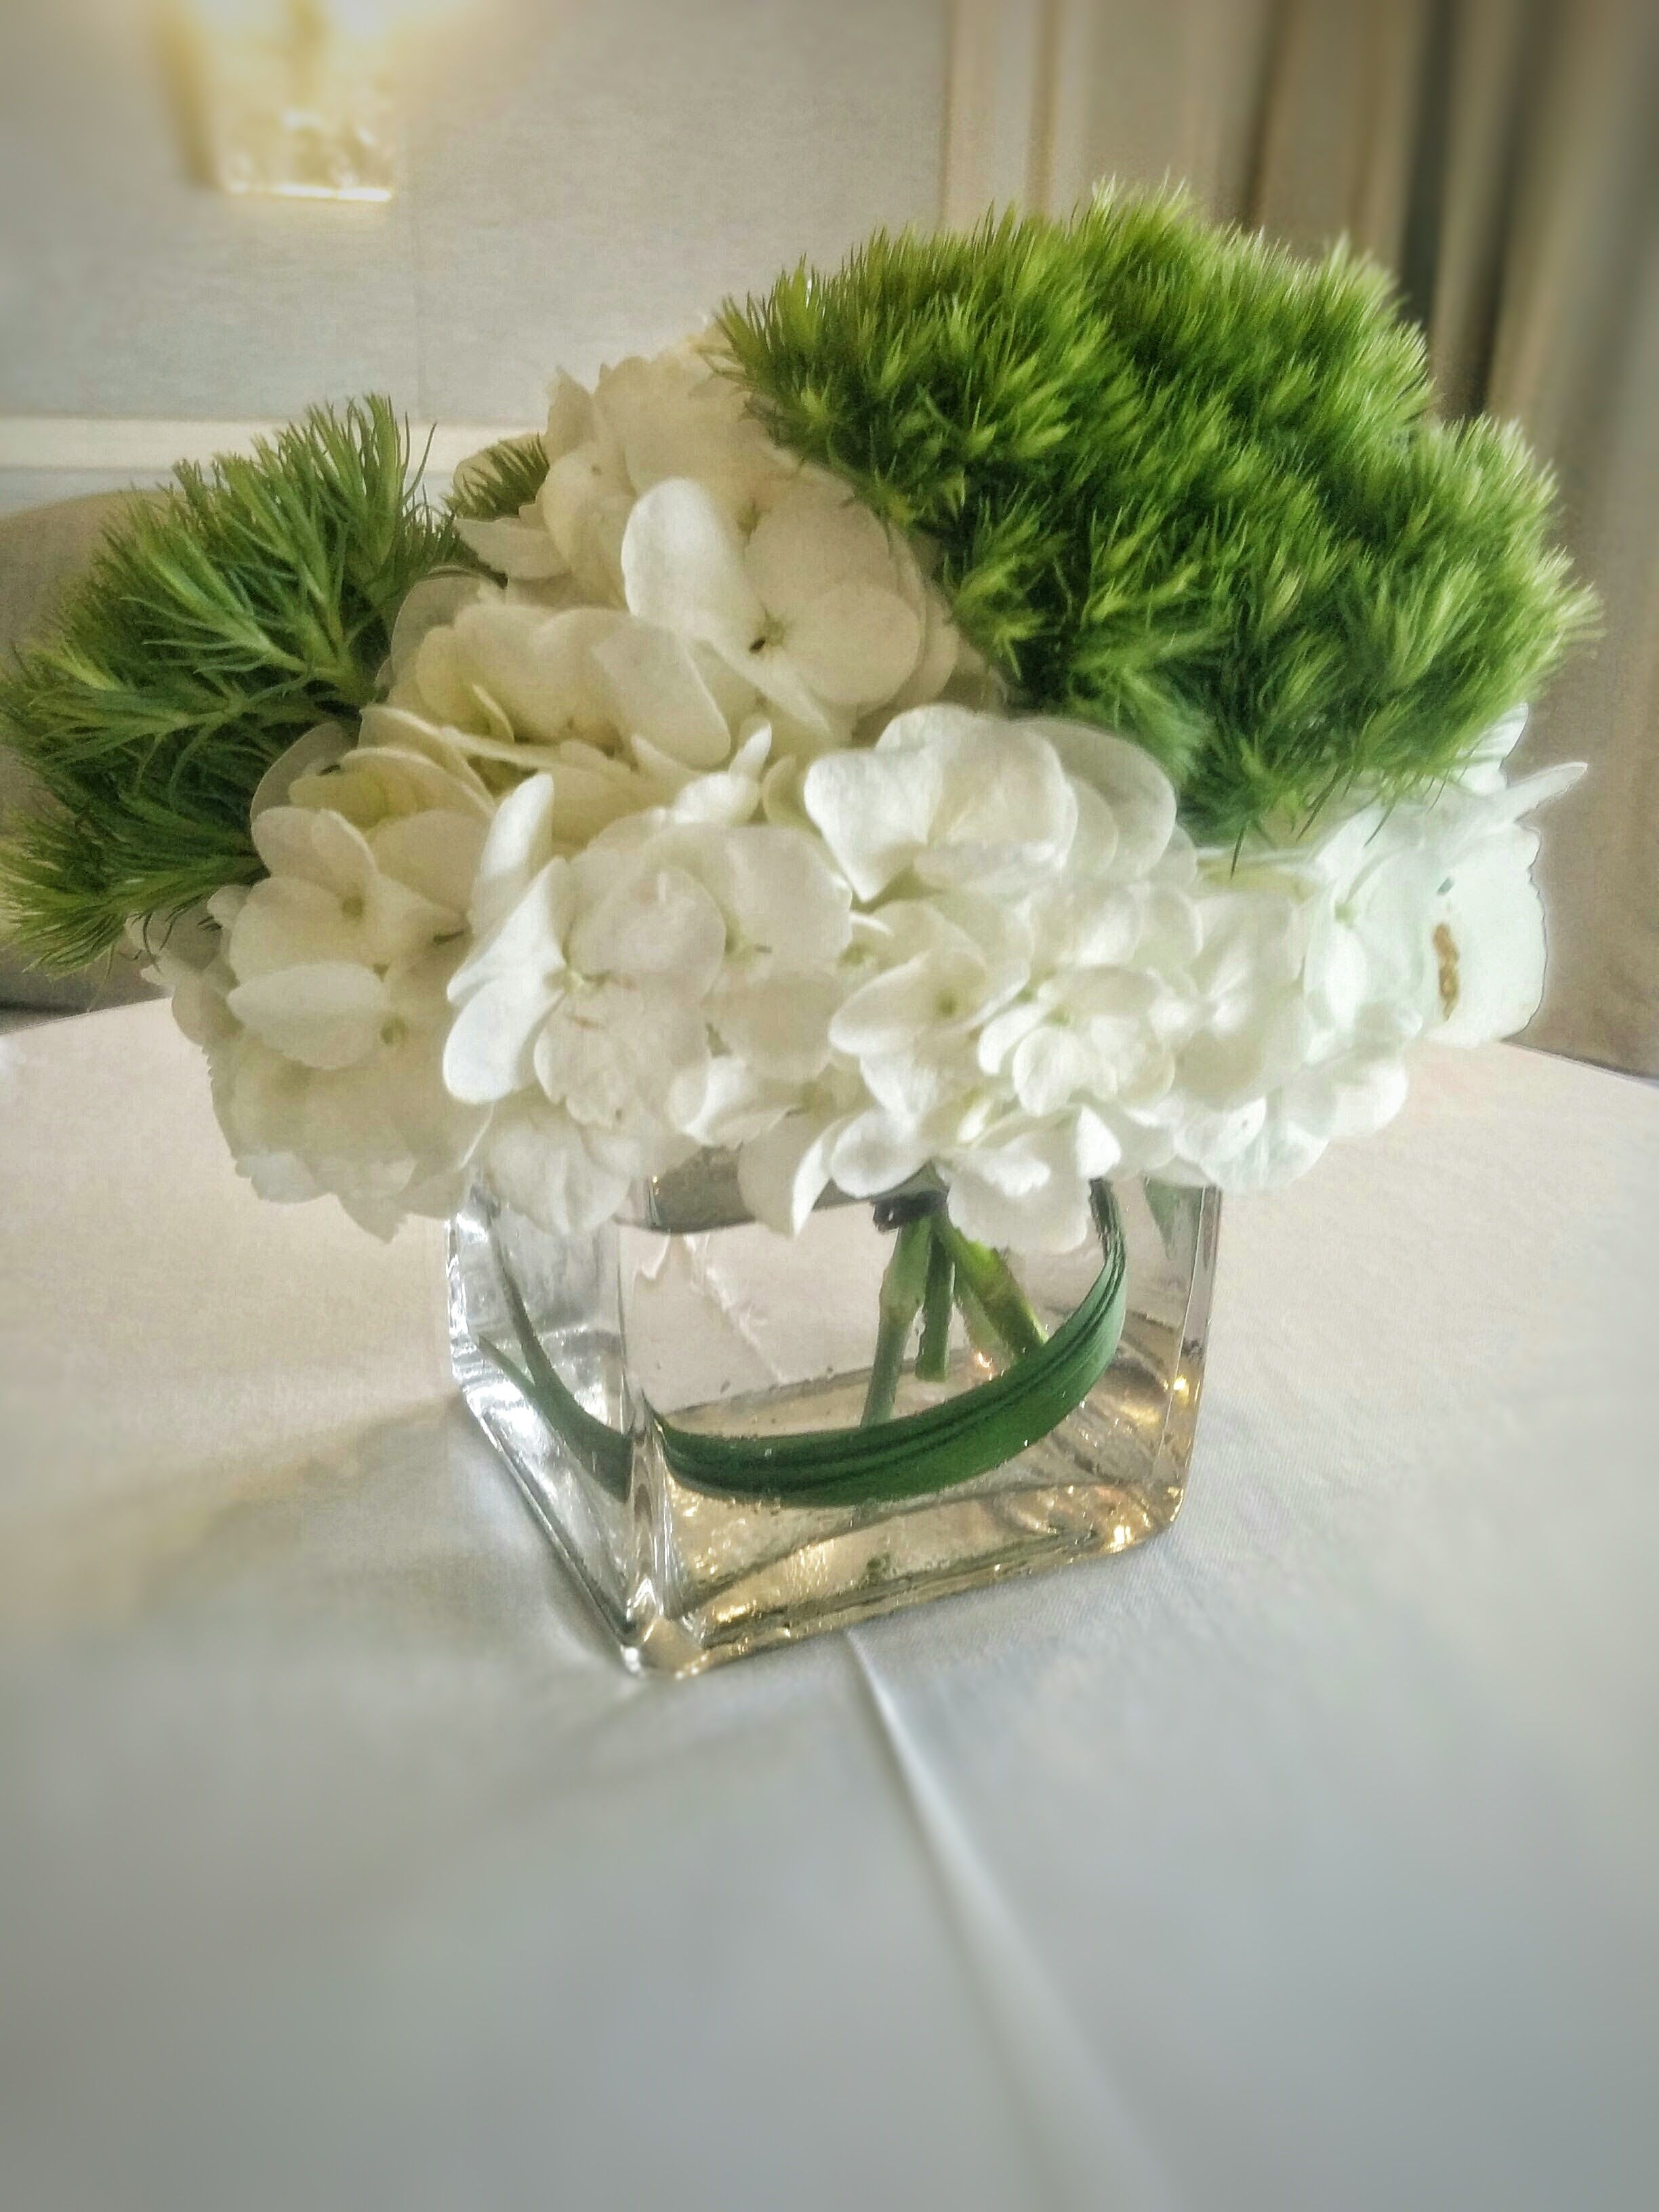 Square Glass Vase With White Hydrangeas And Green Trick Square Vase Centerpieces Square Glass Vase Floral Centerpieces